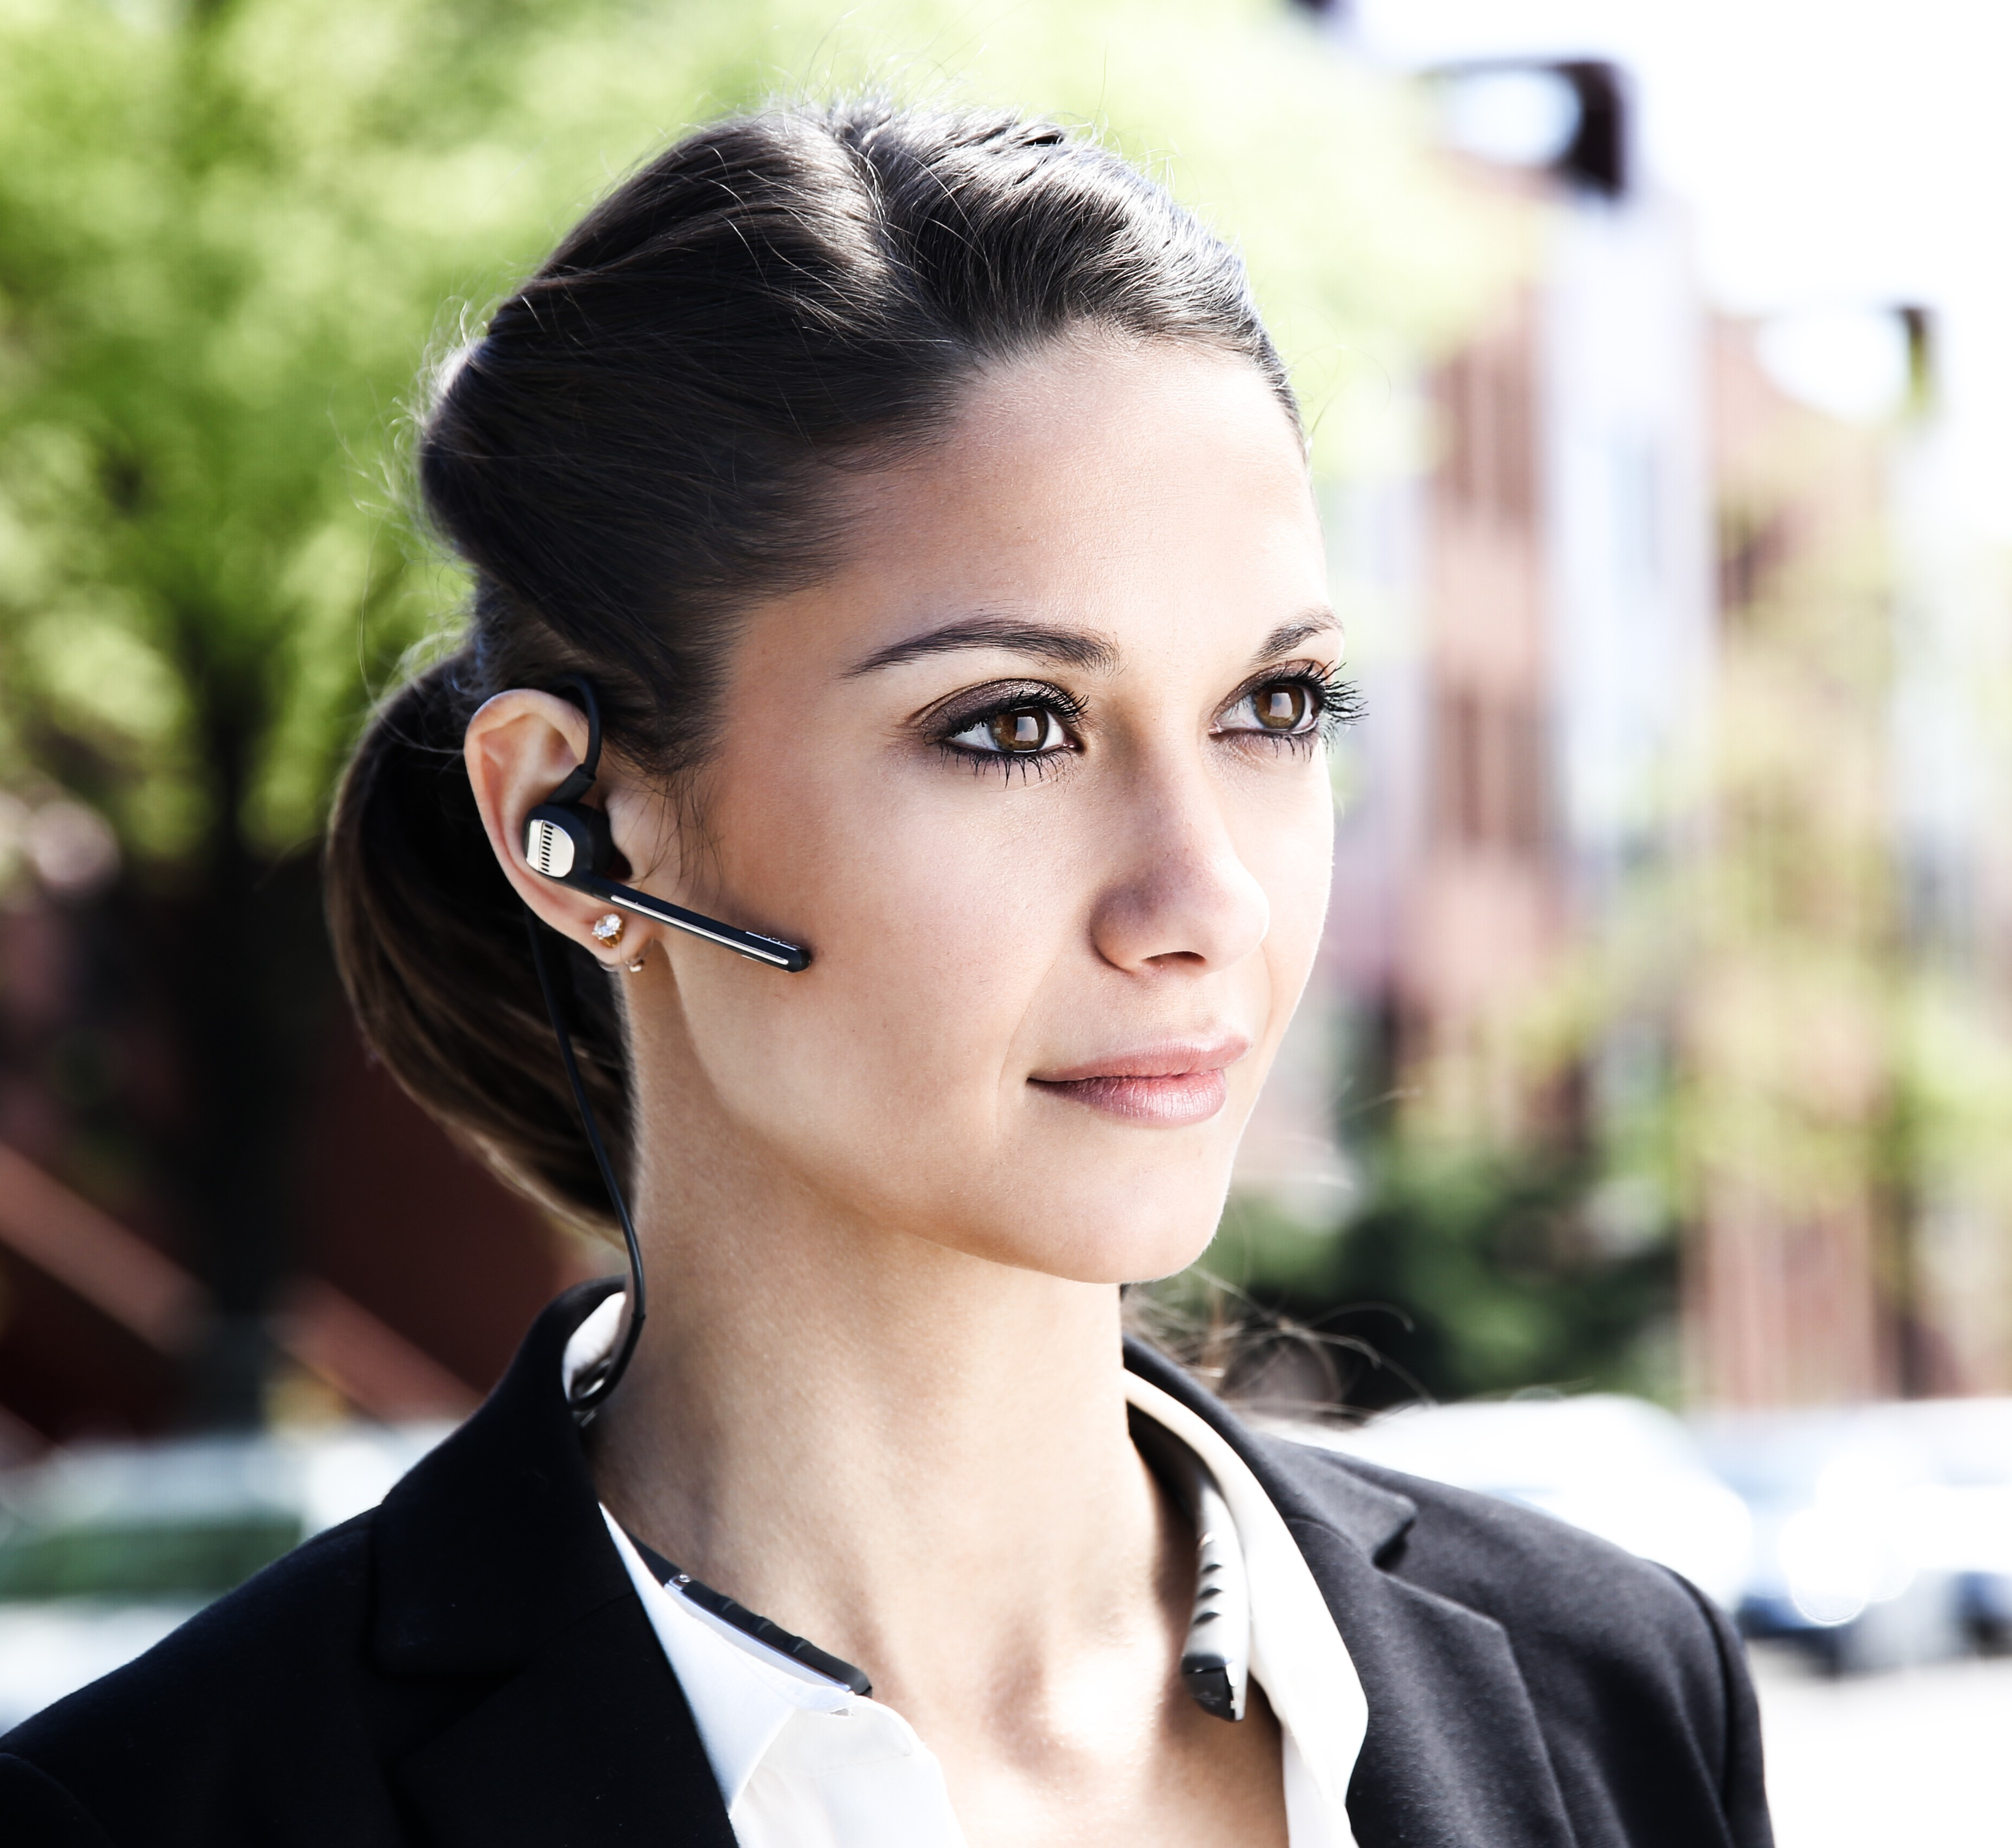 The OV smart headphones from ONVOCAL connect listeners to the physical and digital worlds through the power of voice and sound.(Photo: Business Wire)